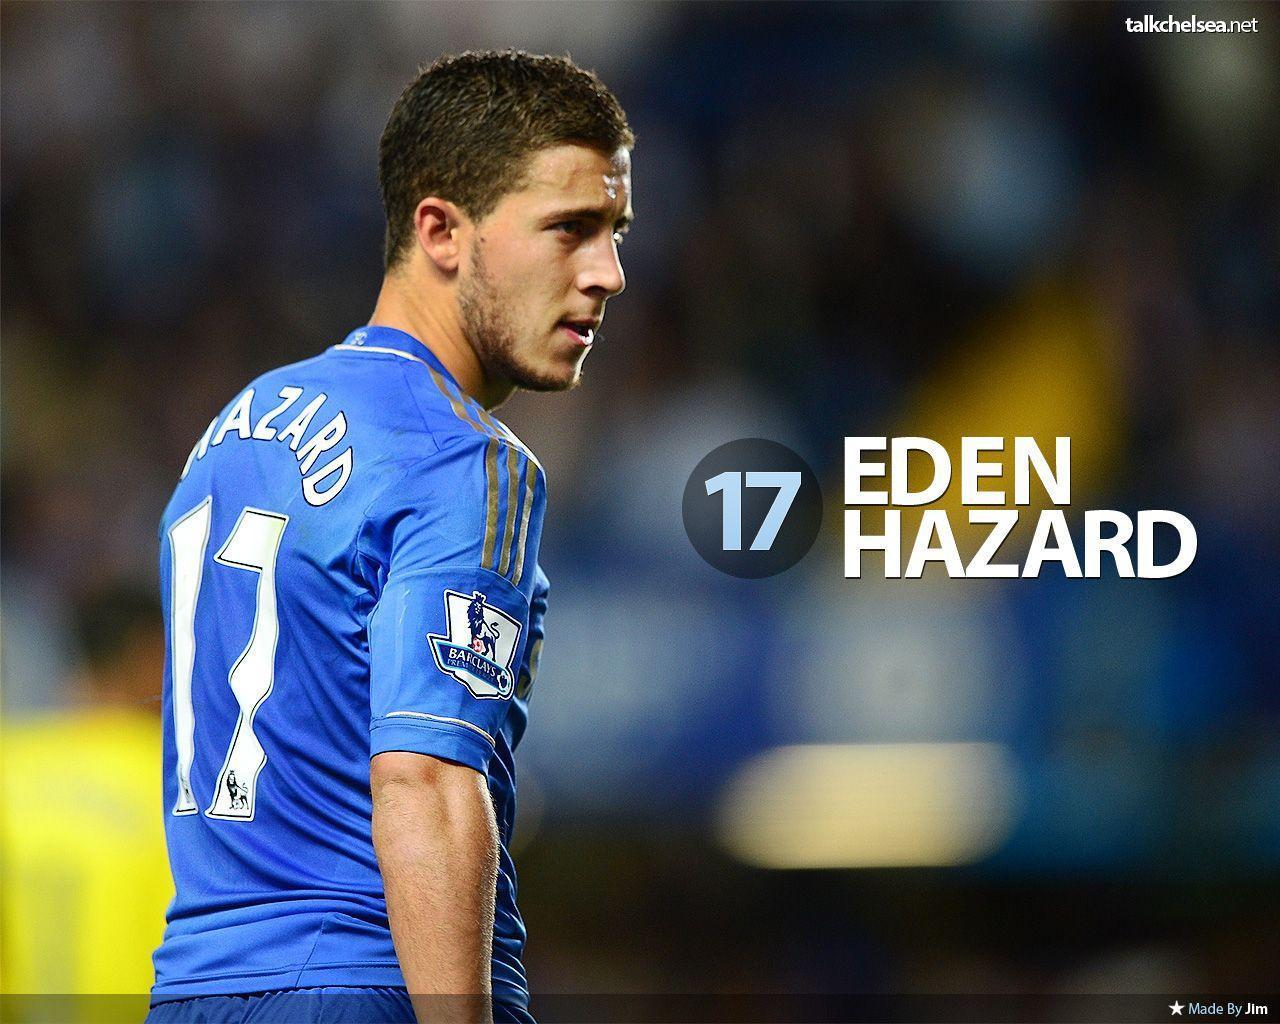 Eden hazard, Backgrounds hd wallpapers and Hd wallpapers